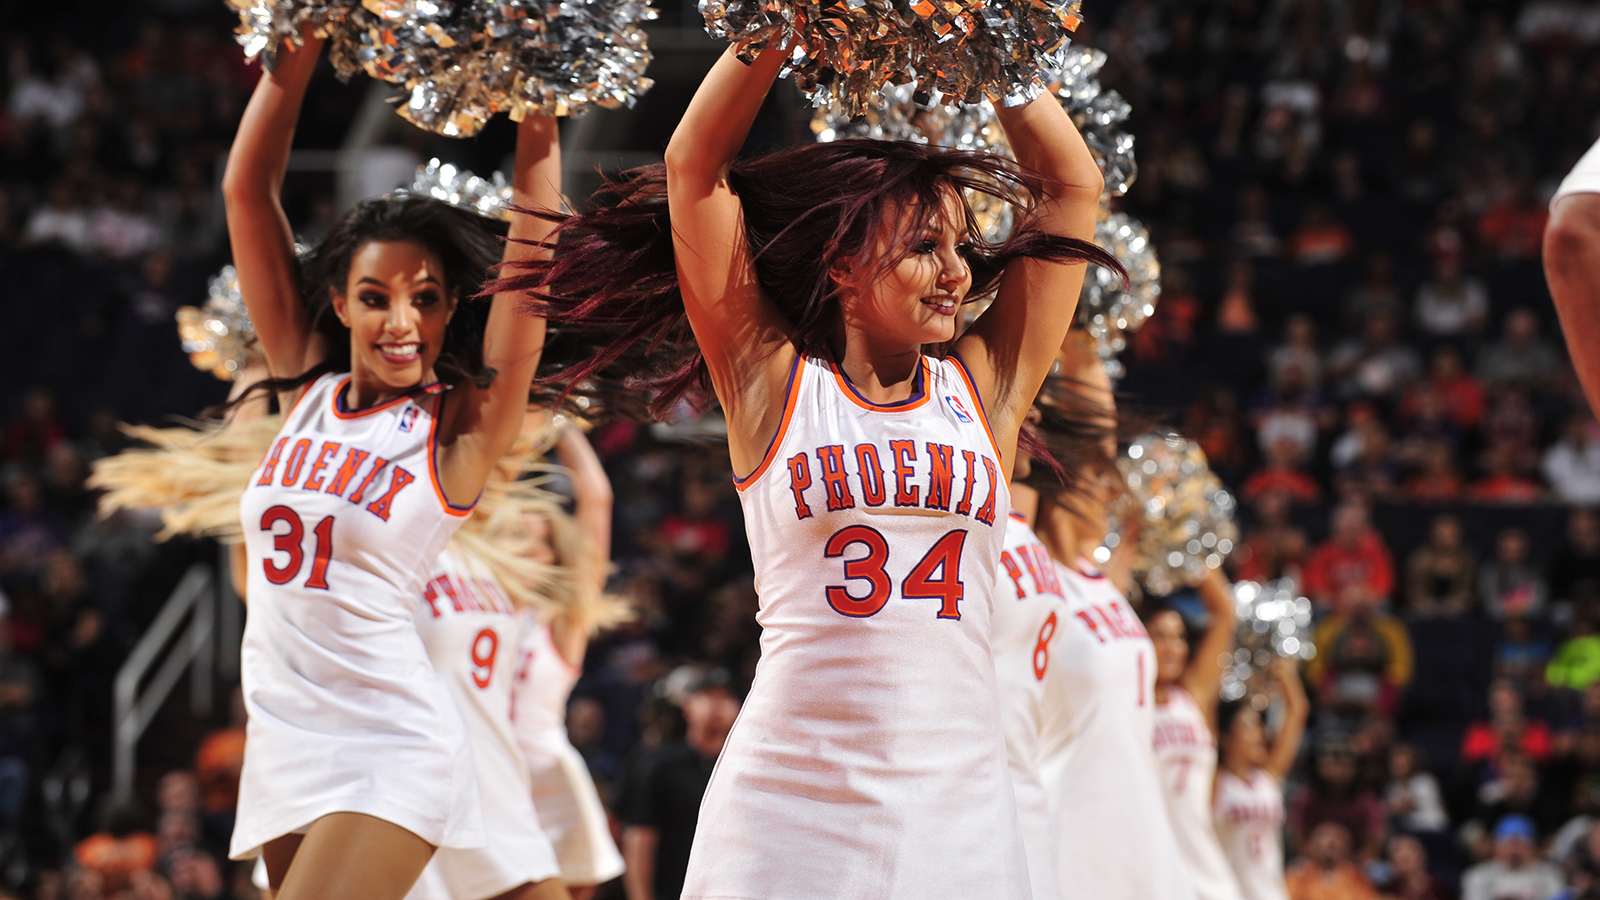 PHOENIX, AZ - NOVEMBER 27: The Phoenix Suns dance team performs during the game against the Denver Nuggets on November 27, 2016 at Talking Stick Resort Arena in Phoenix, Arizona. NOTE TO USER: User expressly acknowledges and agrees that, by downloading and or using this photograph, user is consenting to the terms and conditions of the Getty Images License Agreement. Mandatory Copyright Notice: Copyright 2016 NBAE (Photo by Barry Gossage/NBAE via Getty Images)